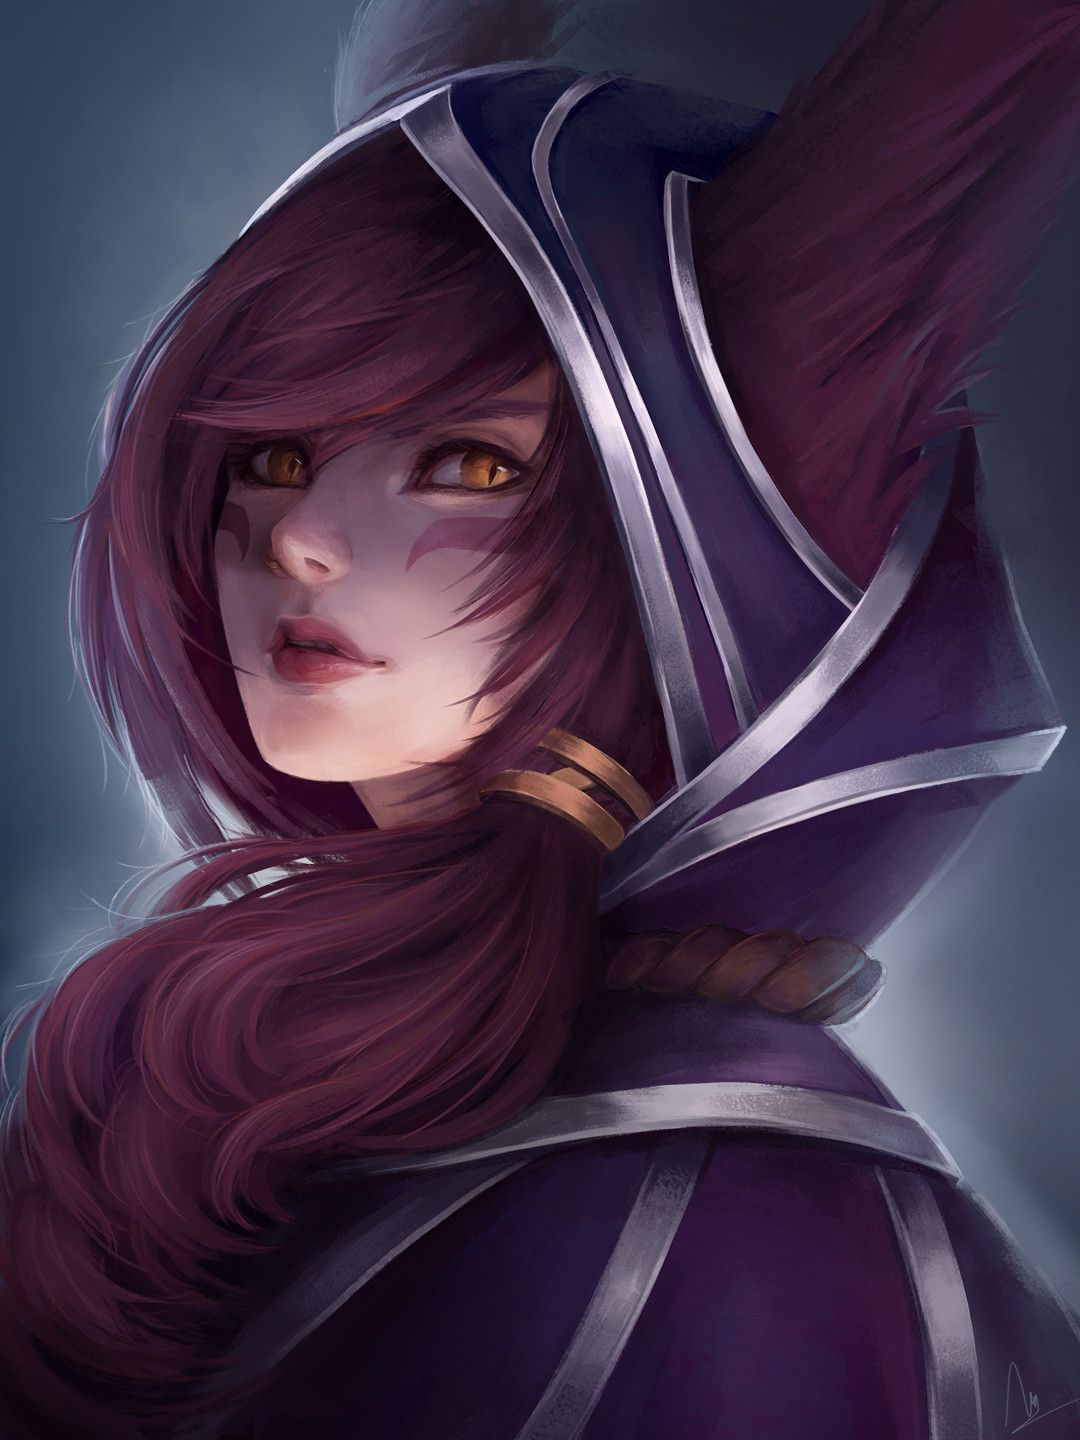 League Overpower Anime 7 trong 2019 Lol, Nghệ thuật